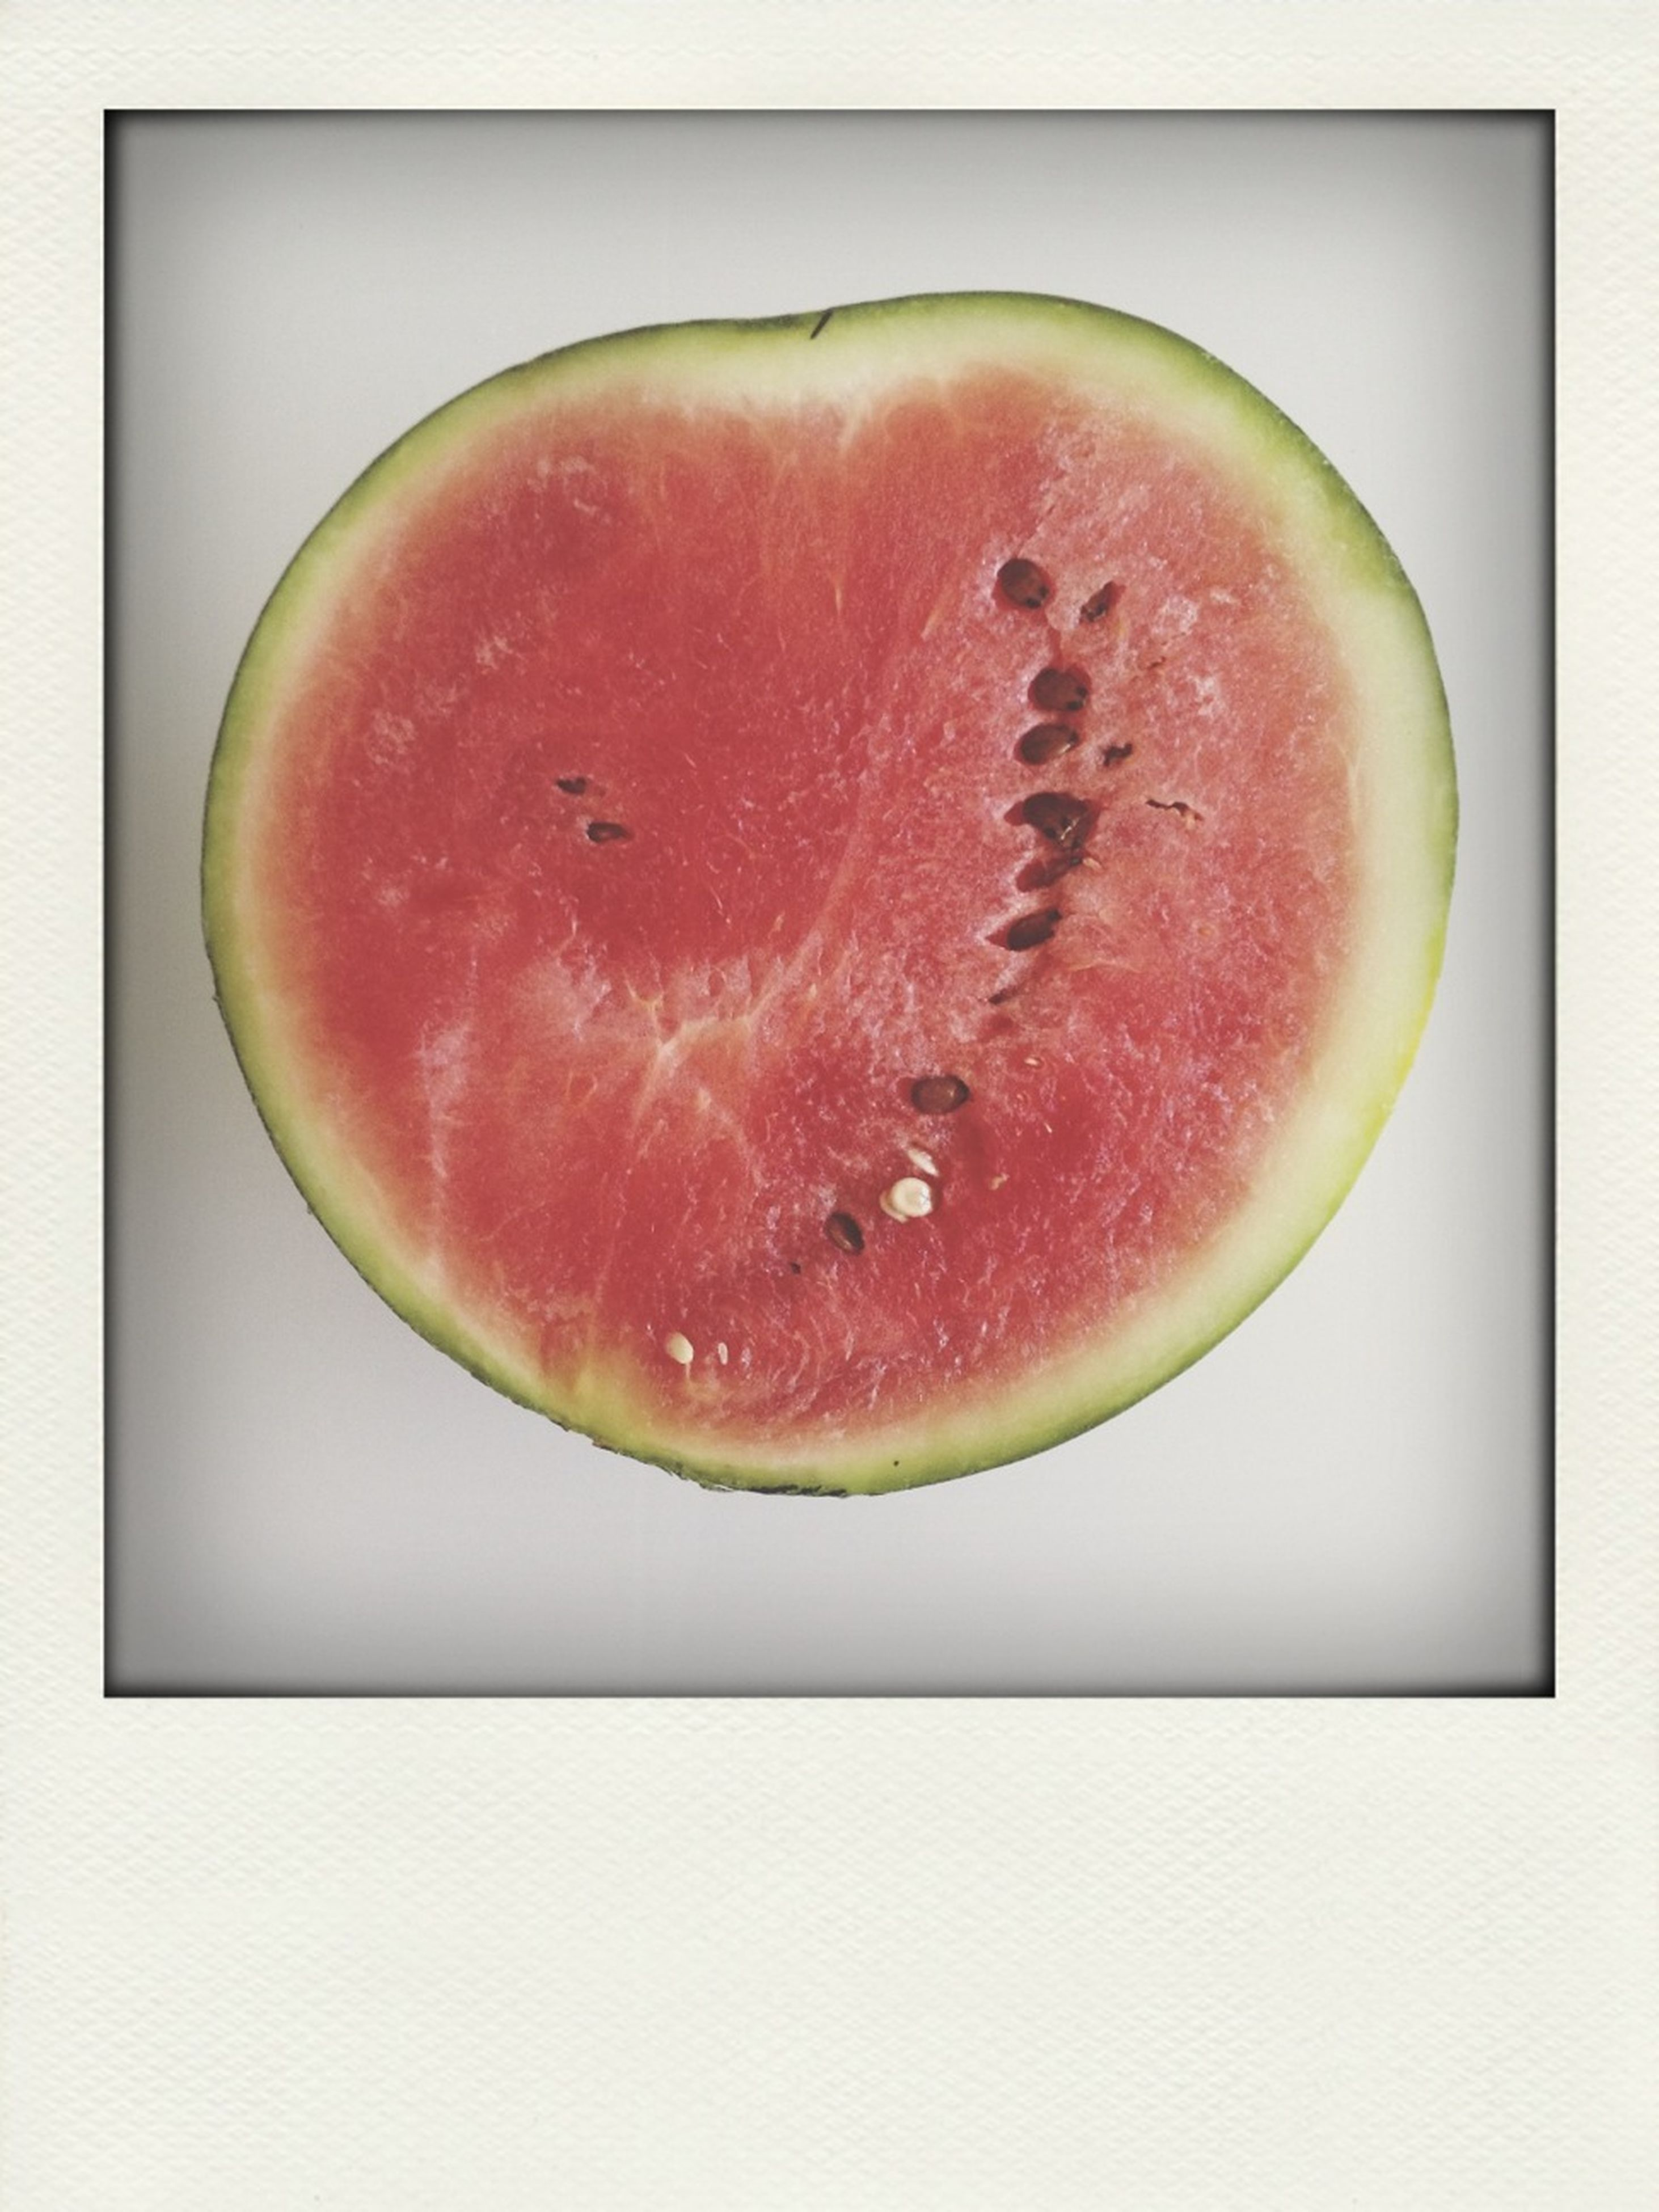 food and drink, food, freshness, healthy eating, fruit, indoors, still life, slice, close-up, studio shot, transfer print, cross section, healthy lifestyle, red, auto post production filter, refreshment, organic, juicy, directly above, halved